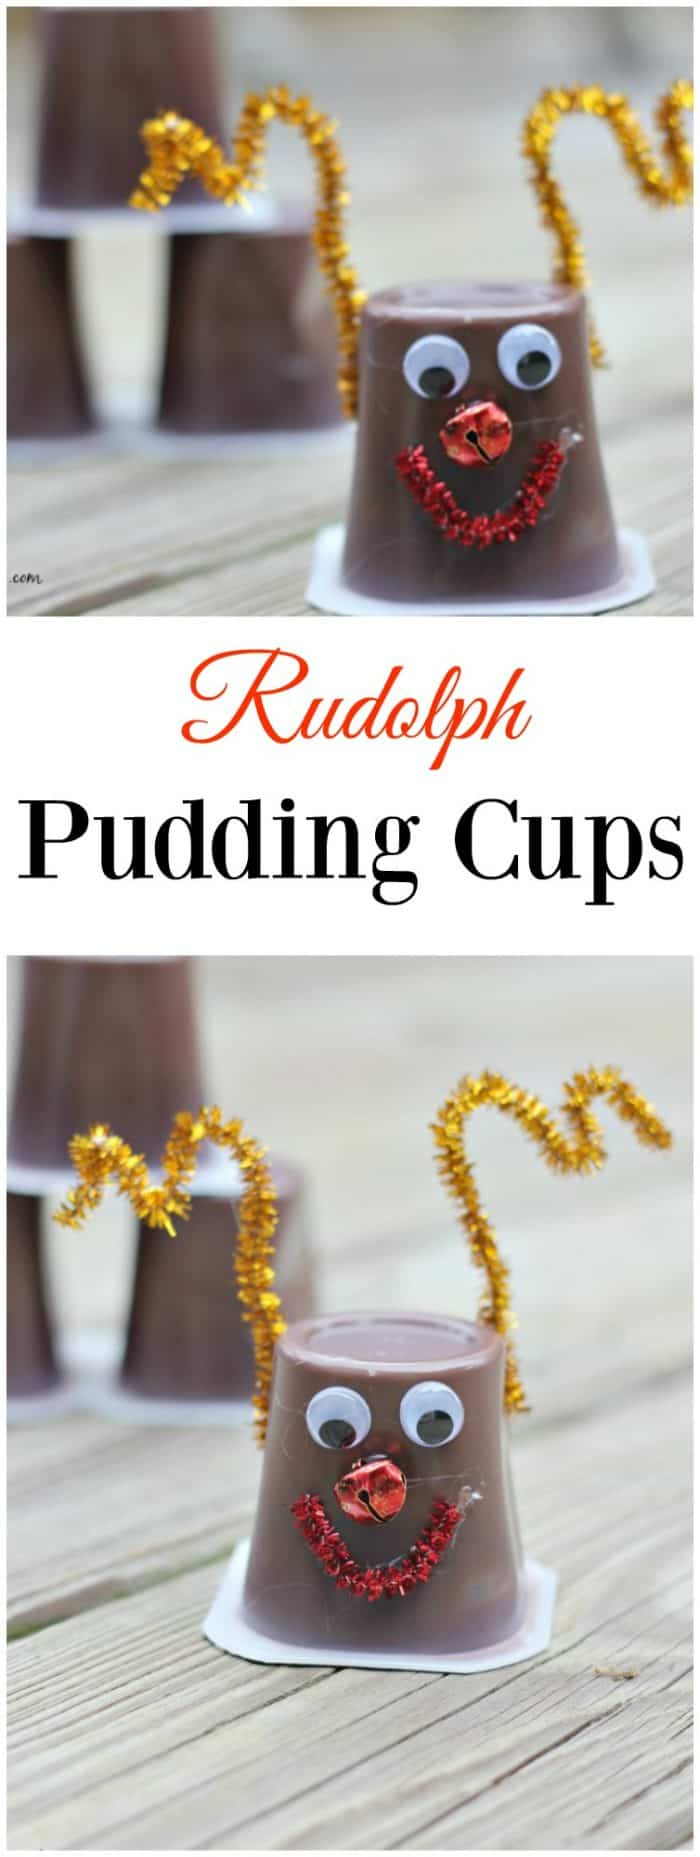 rudolph-pudding-cups-snack